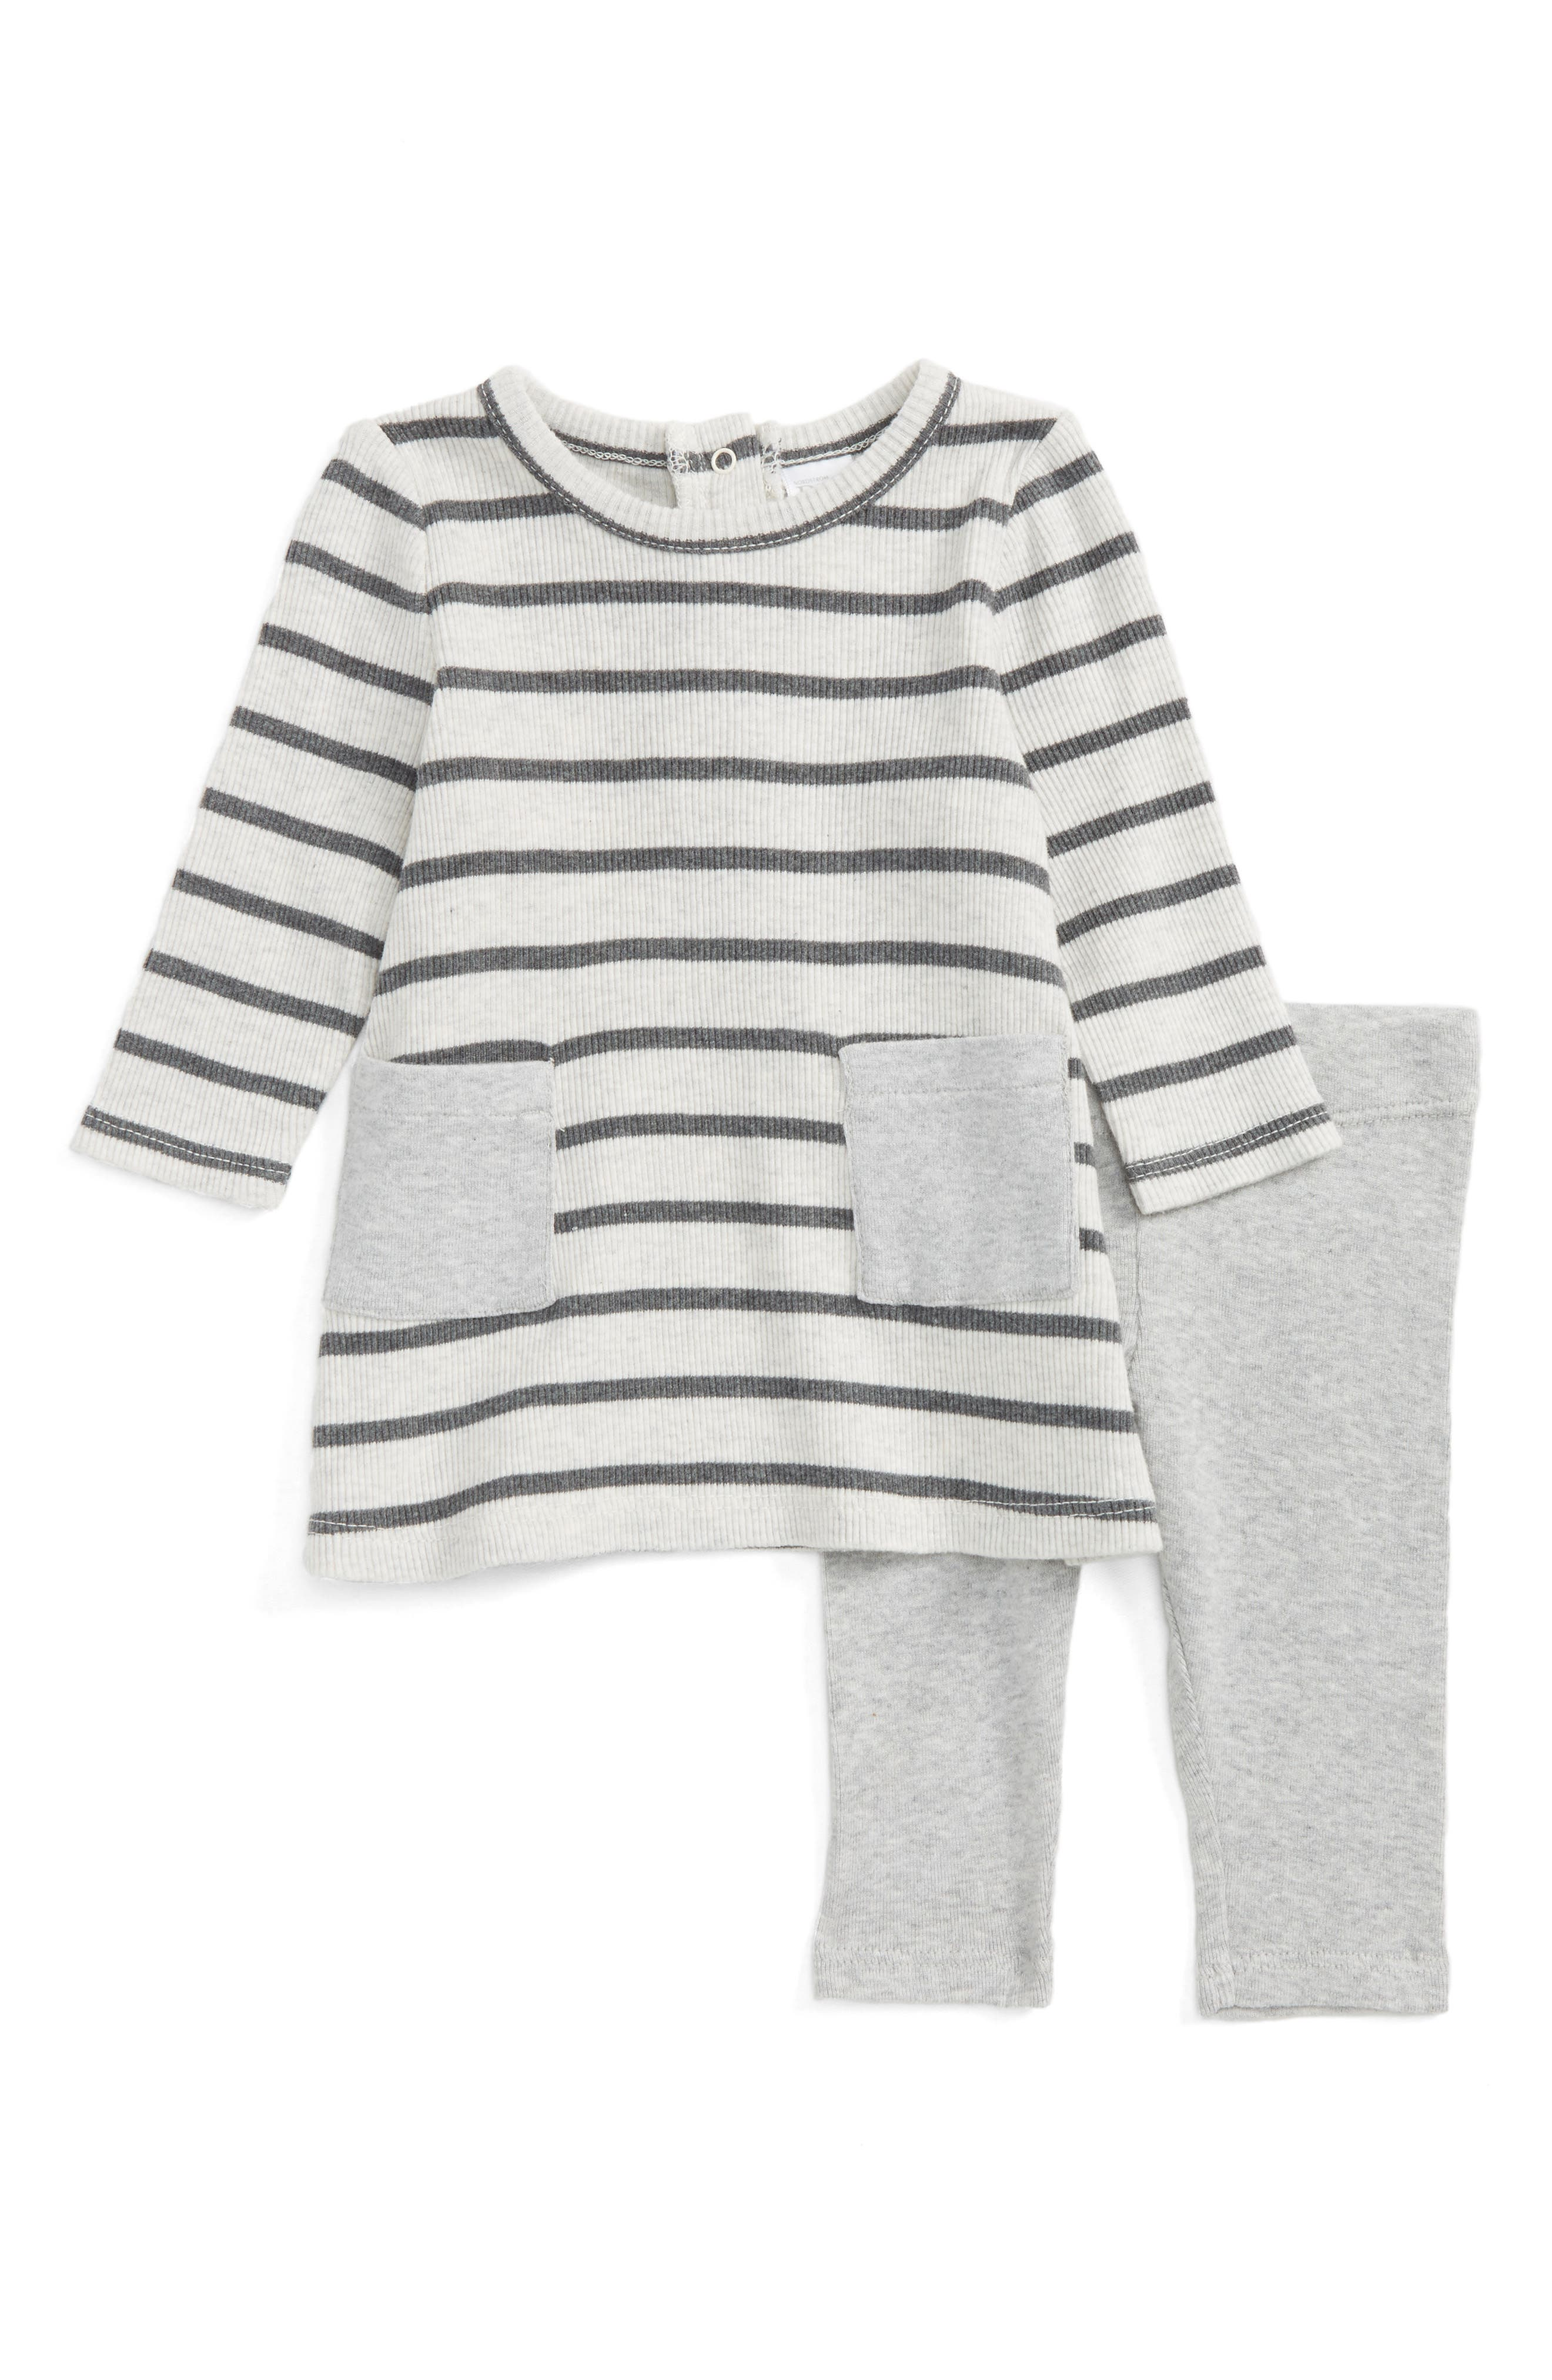 Nordstrom Baby Stripe Dress & Leggings Set (Baby Girls)